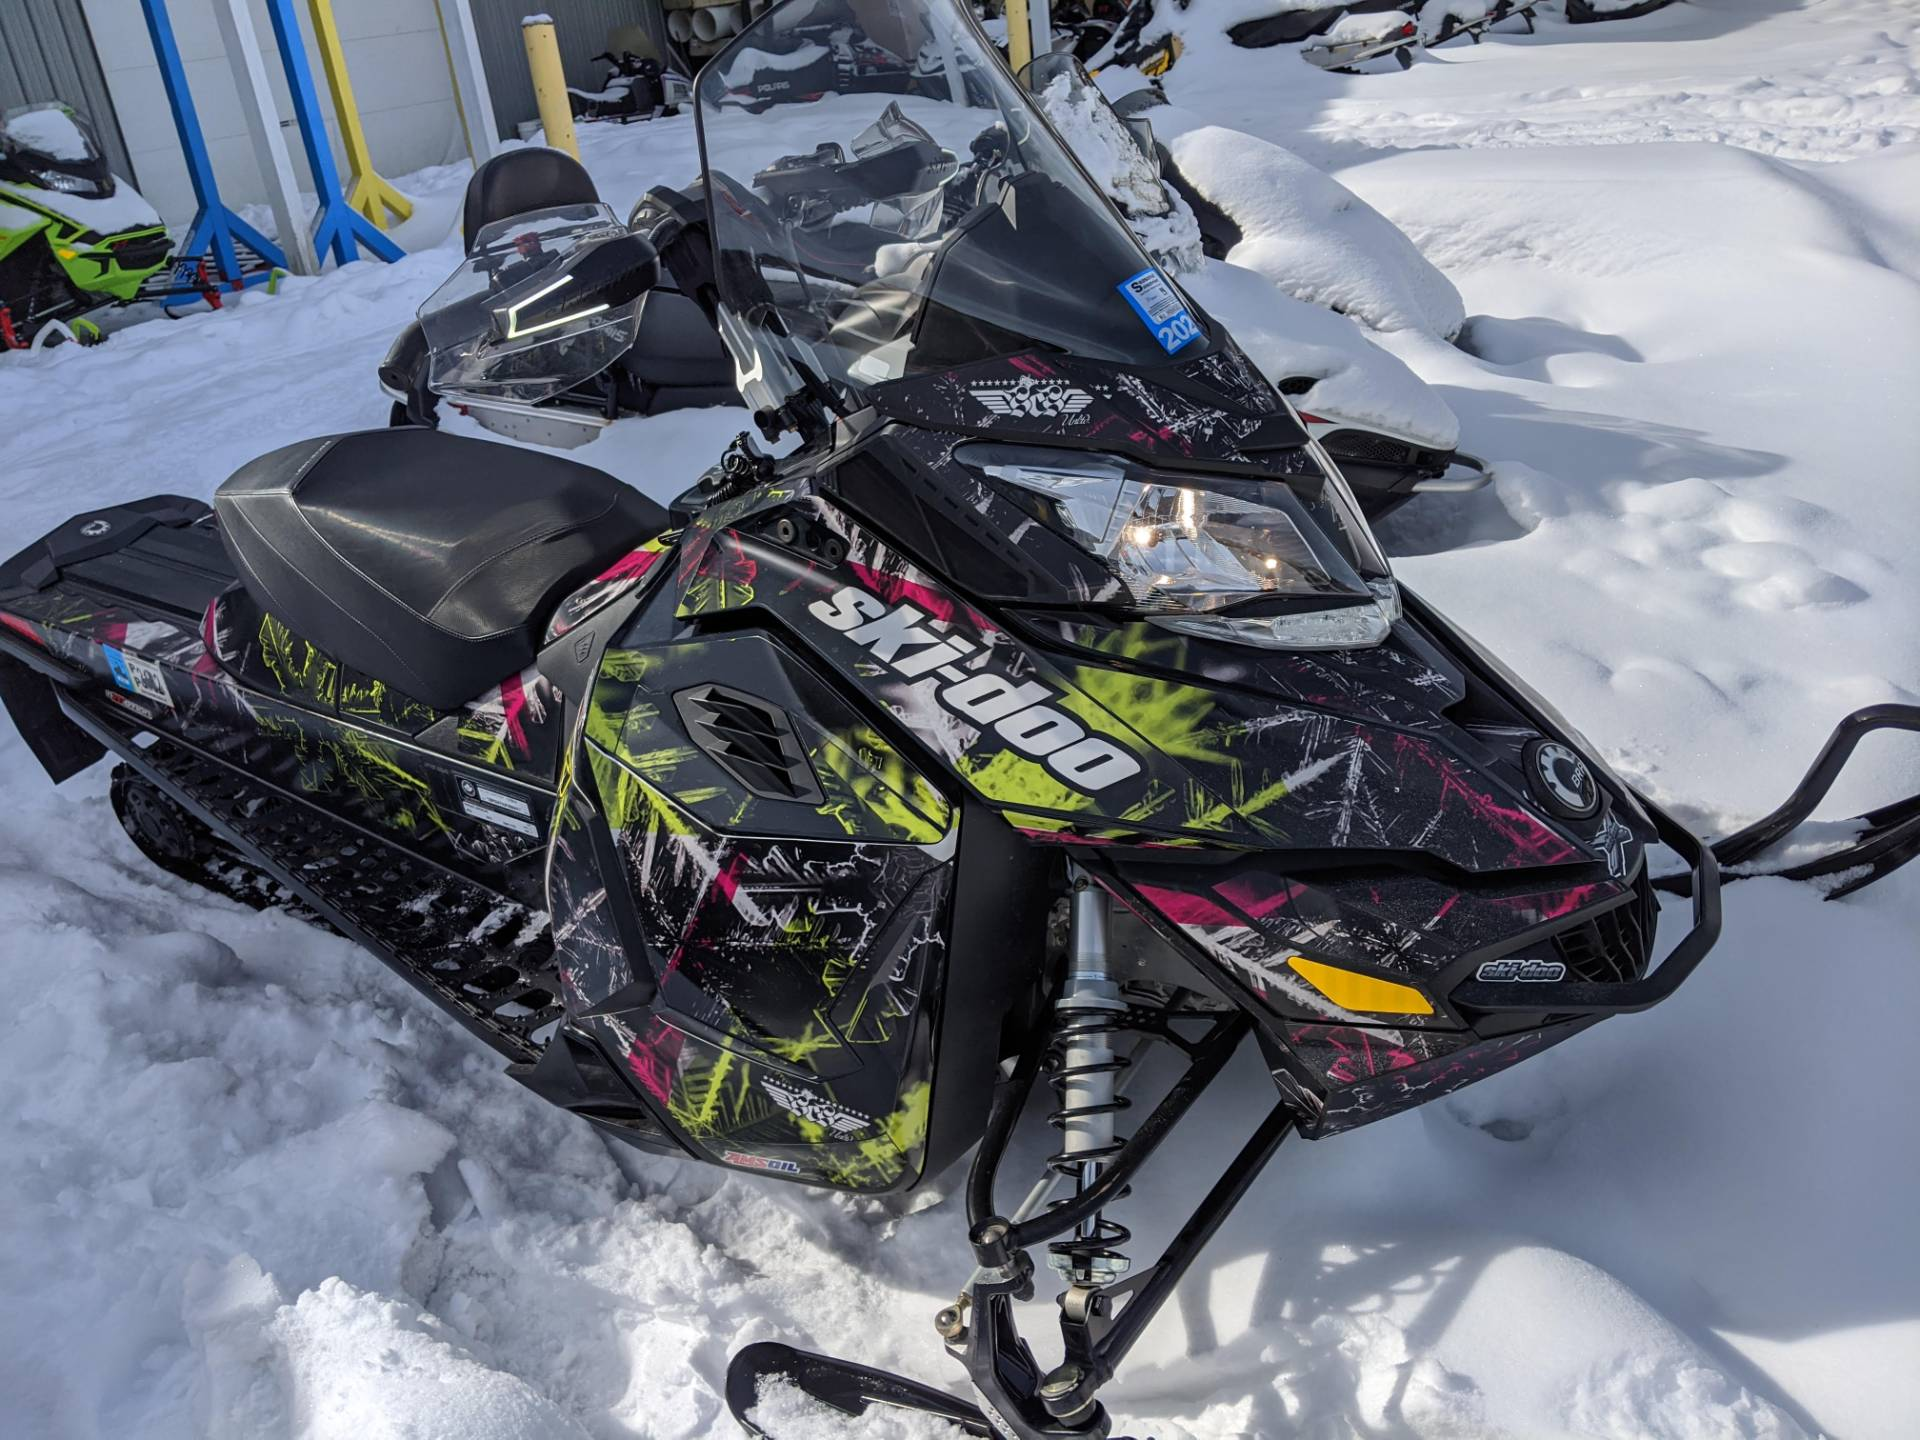 2015 Ski-Doo Renegade® Adrenaline™ E-TEC® 800R in Phoenix, New York - Photo 2